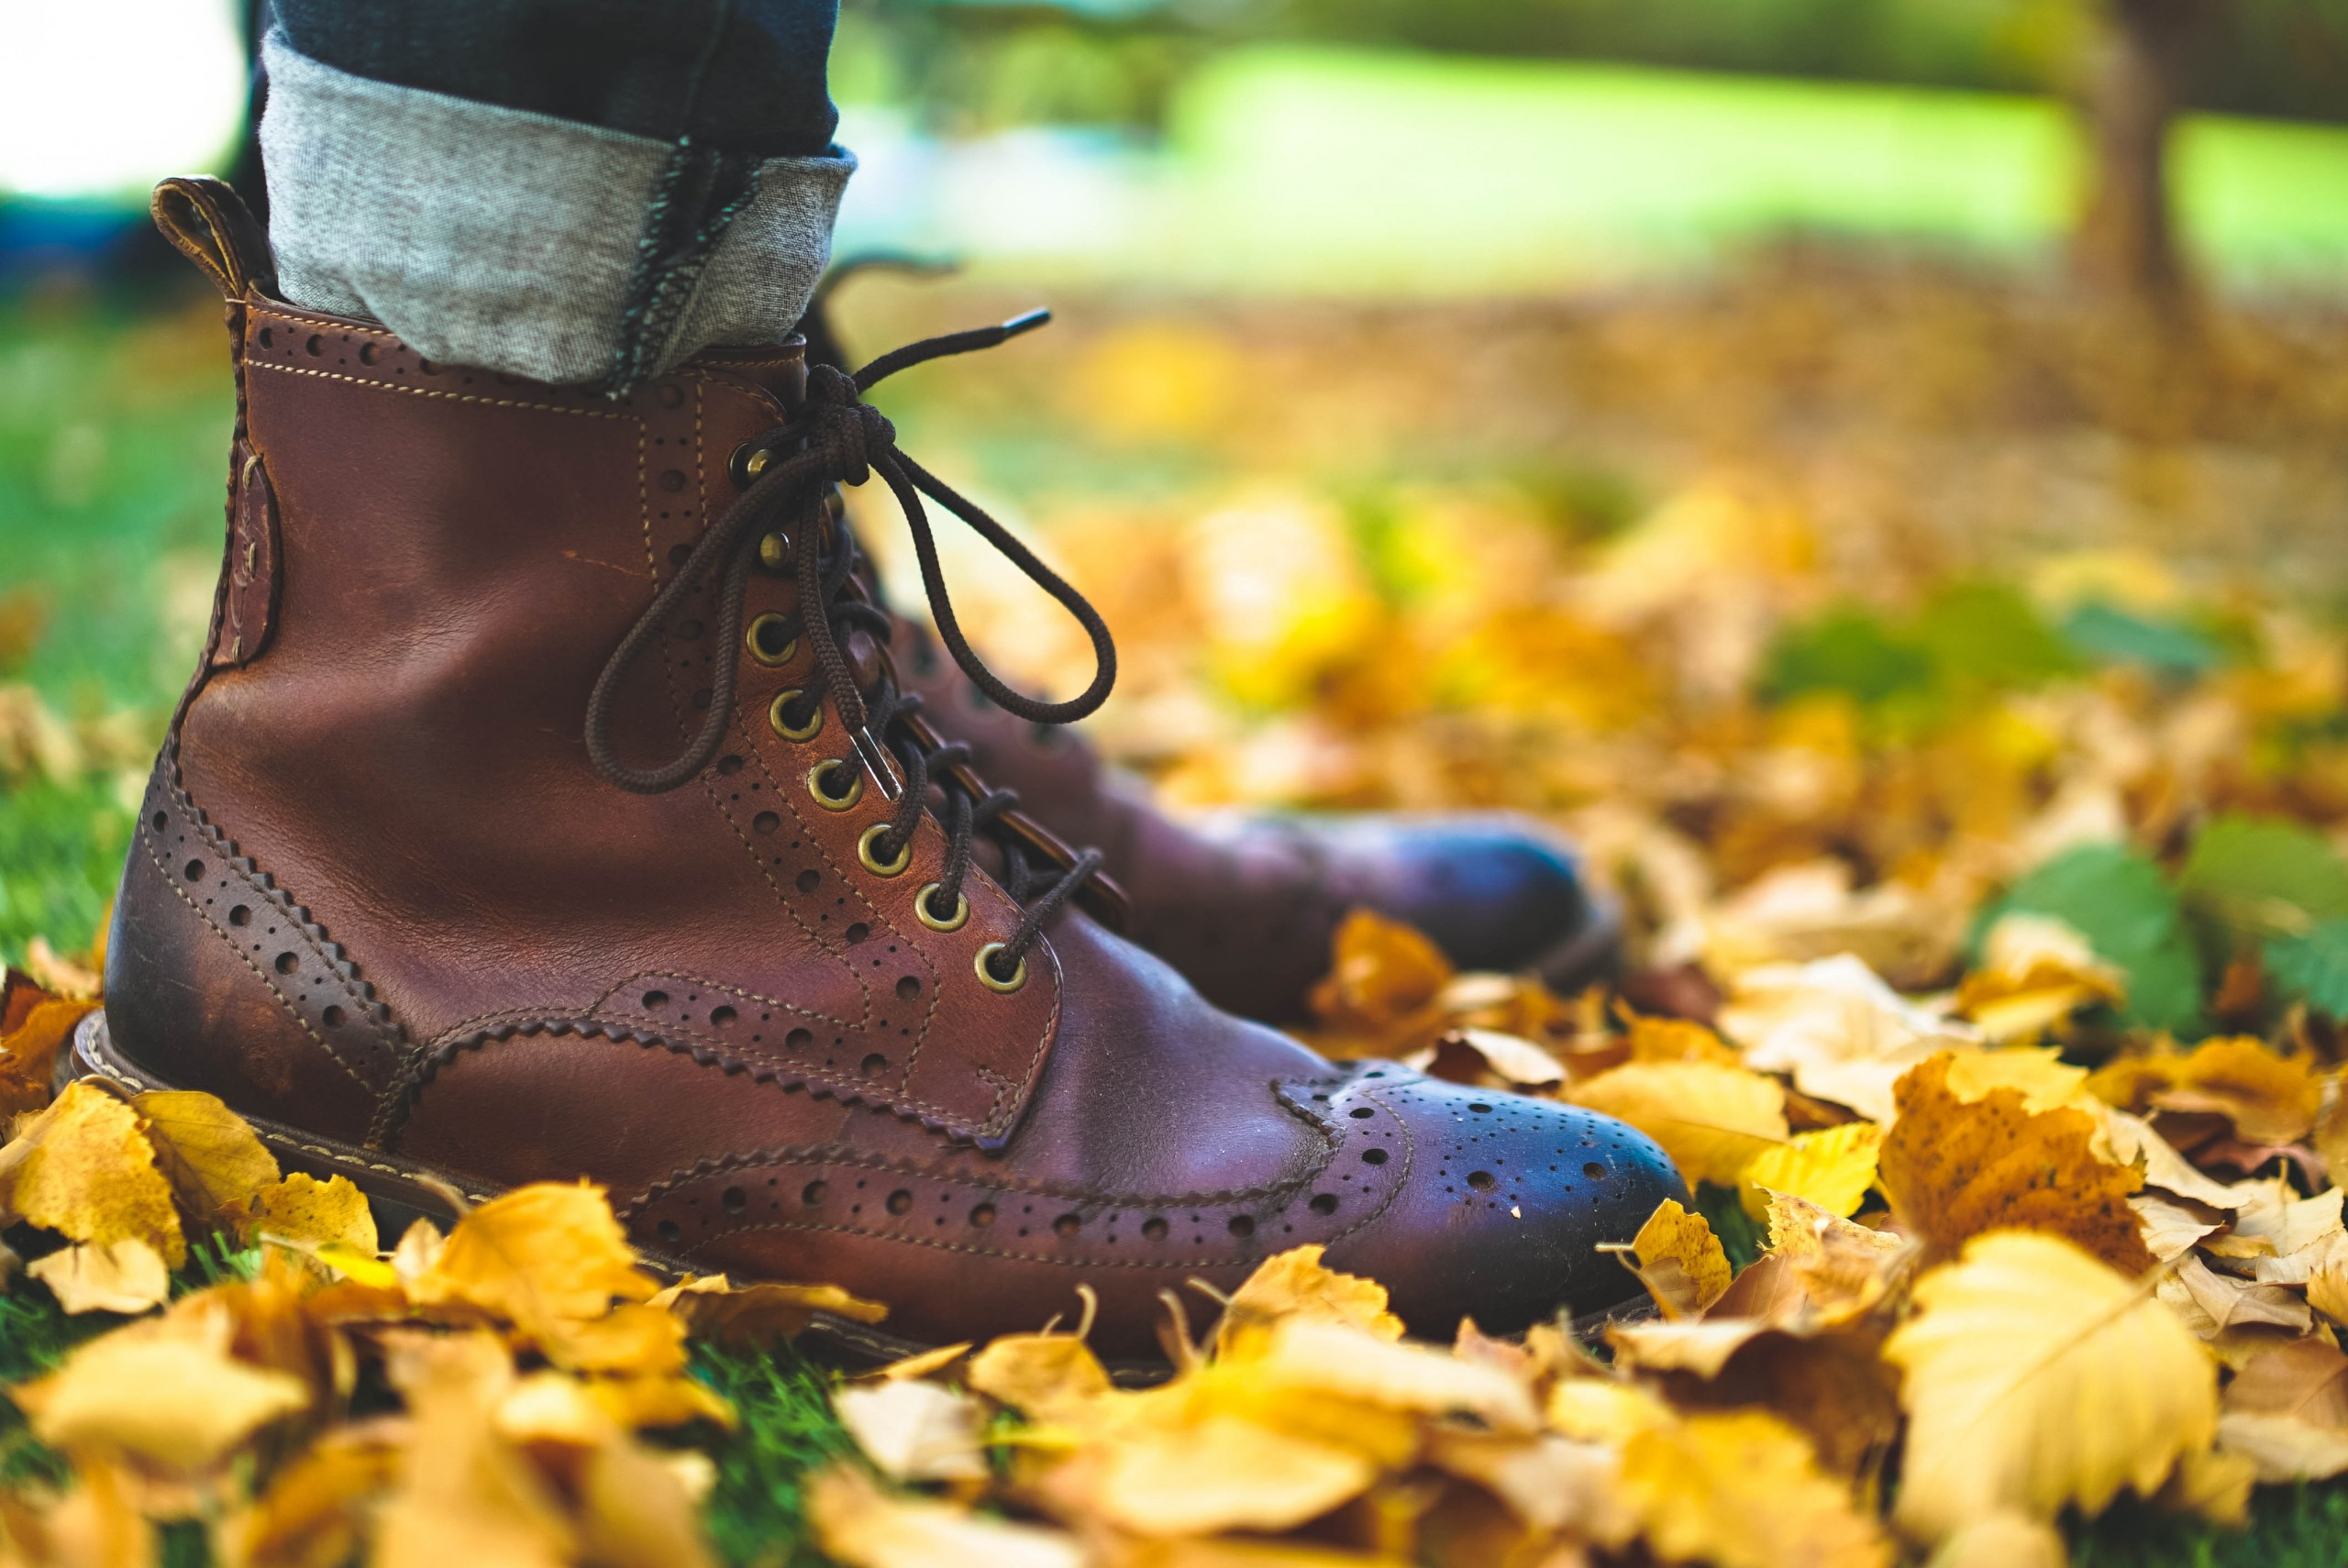 Brown fashion boots with high-top laces in yellow fall leaves.